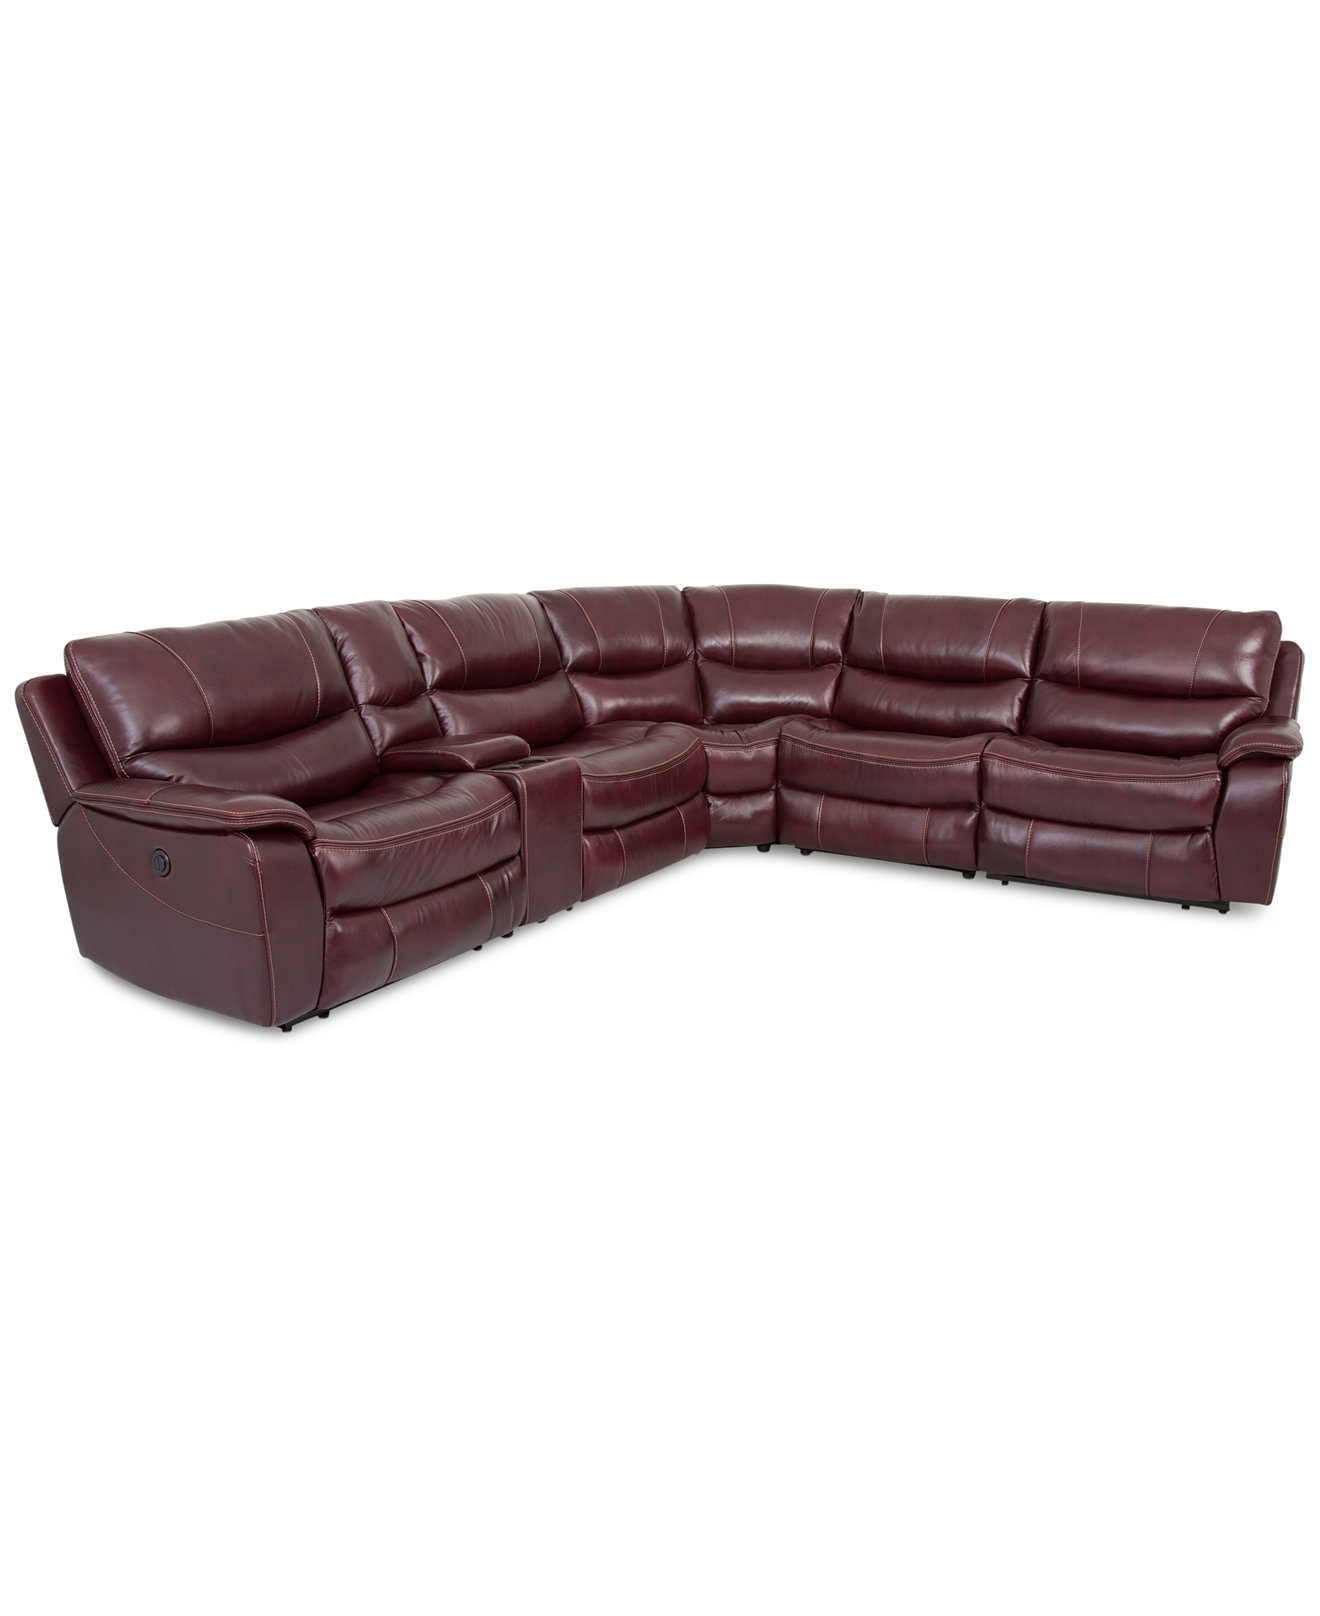 Closeout! Daren Leather 6 Pc Sectional Sofa With 3 Power Recliners For Jedd Fabric Reclining Sectional Sofas (View 6 of 10)